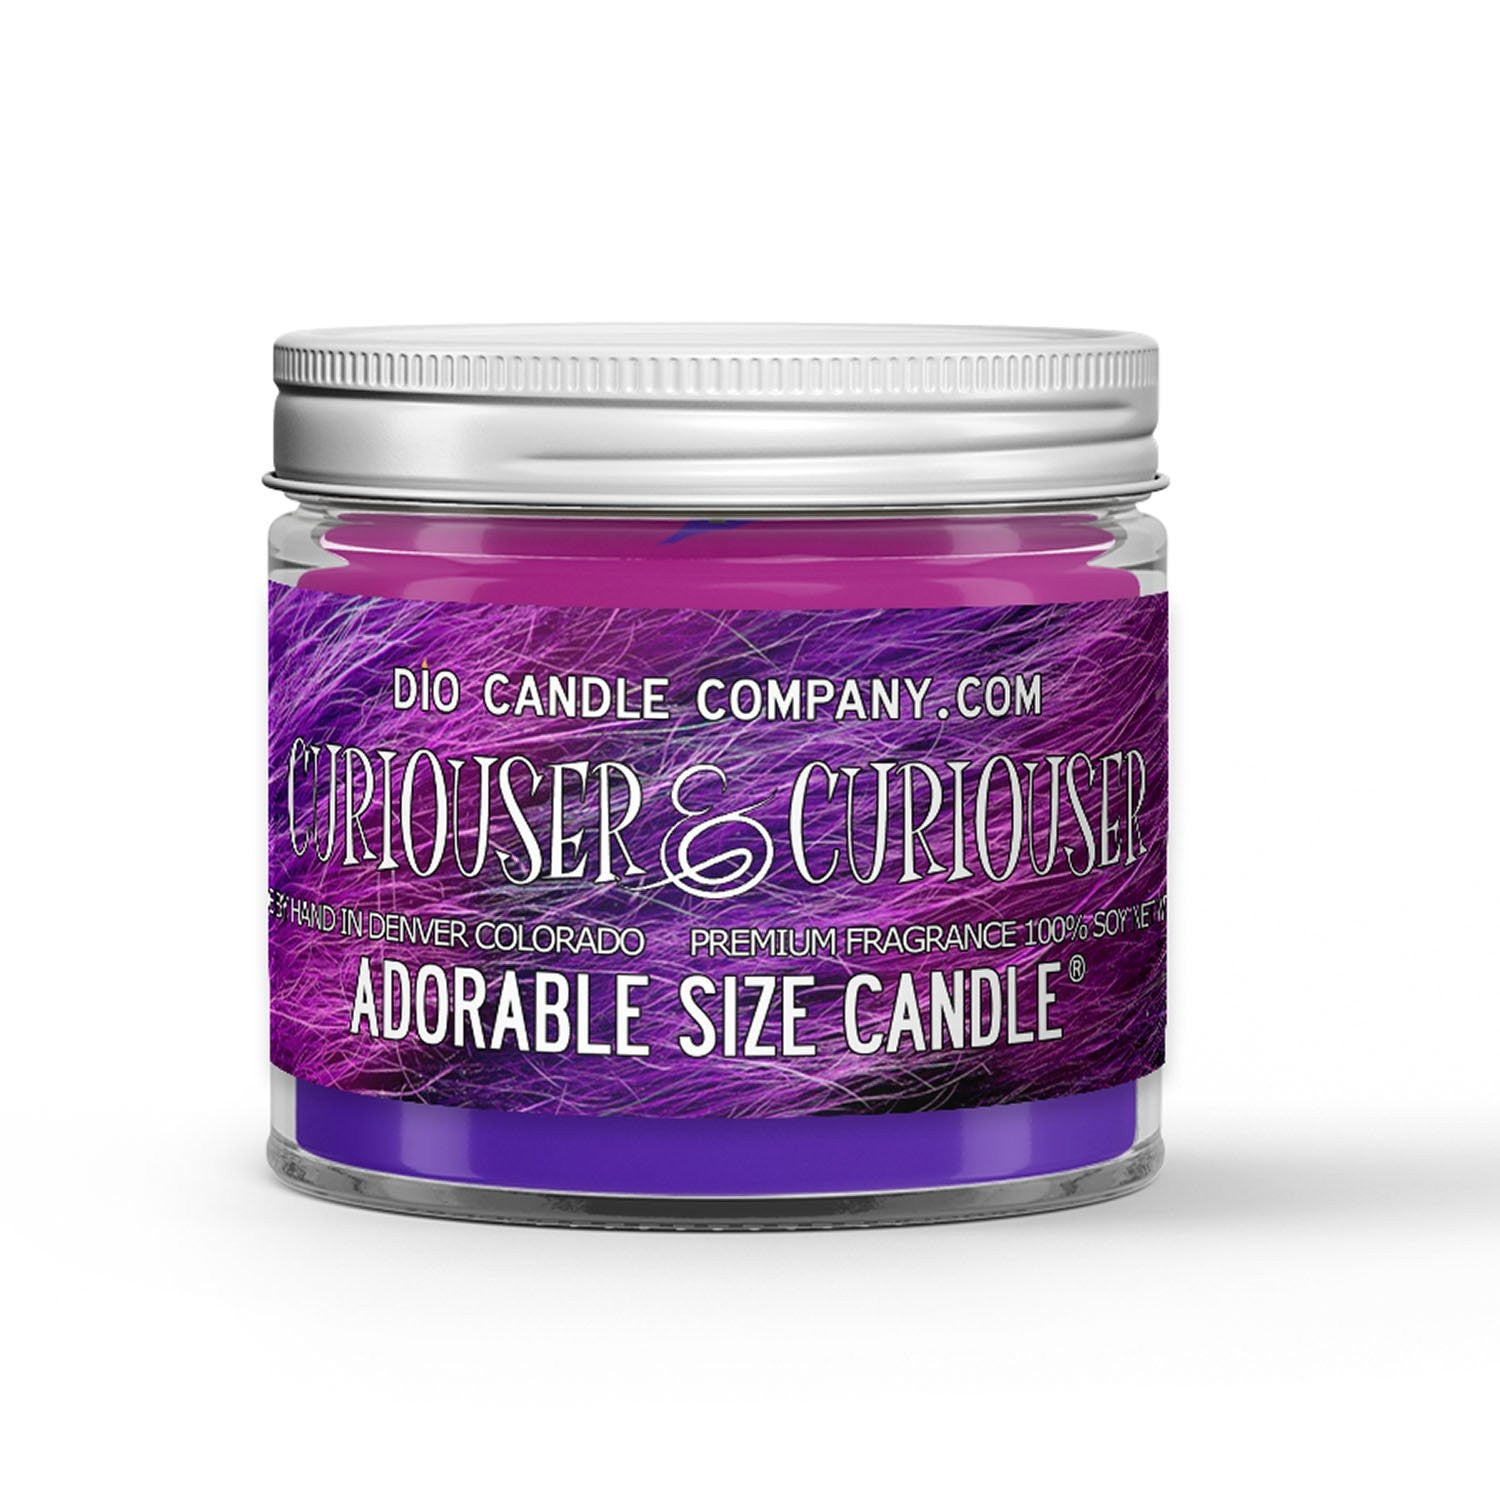 Curiouser & Curiouser Candle - Smokey Woods - Fresh Cucumber - 1oz Adorable Size Candle® - Dio Candle Company